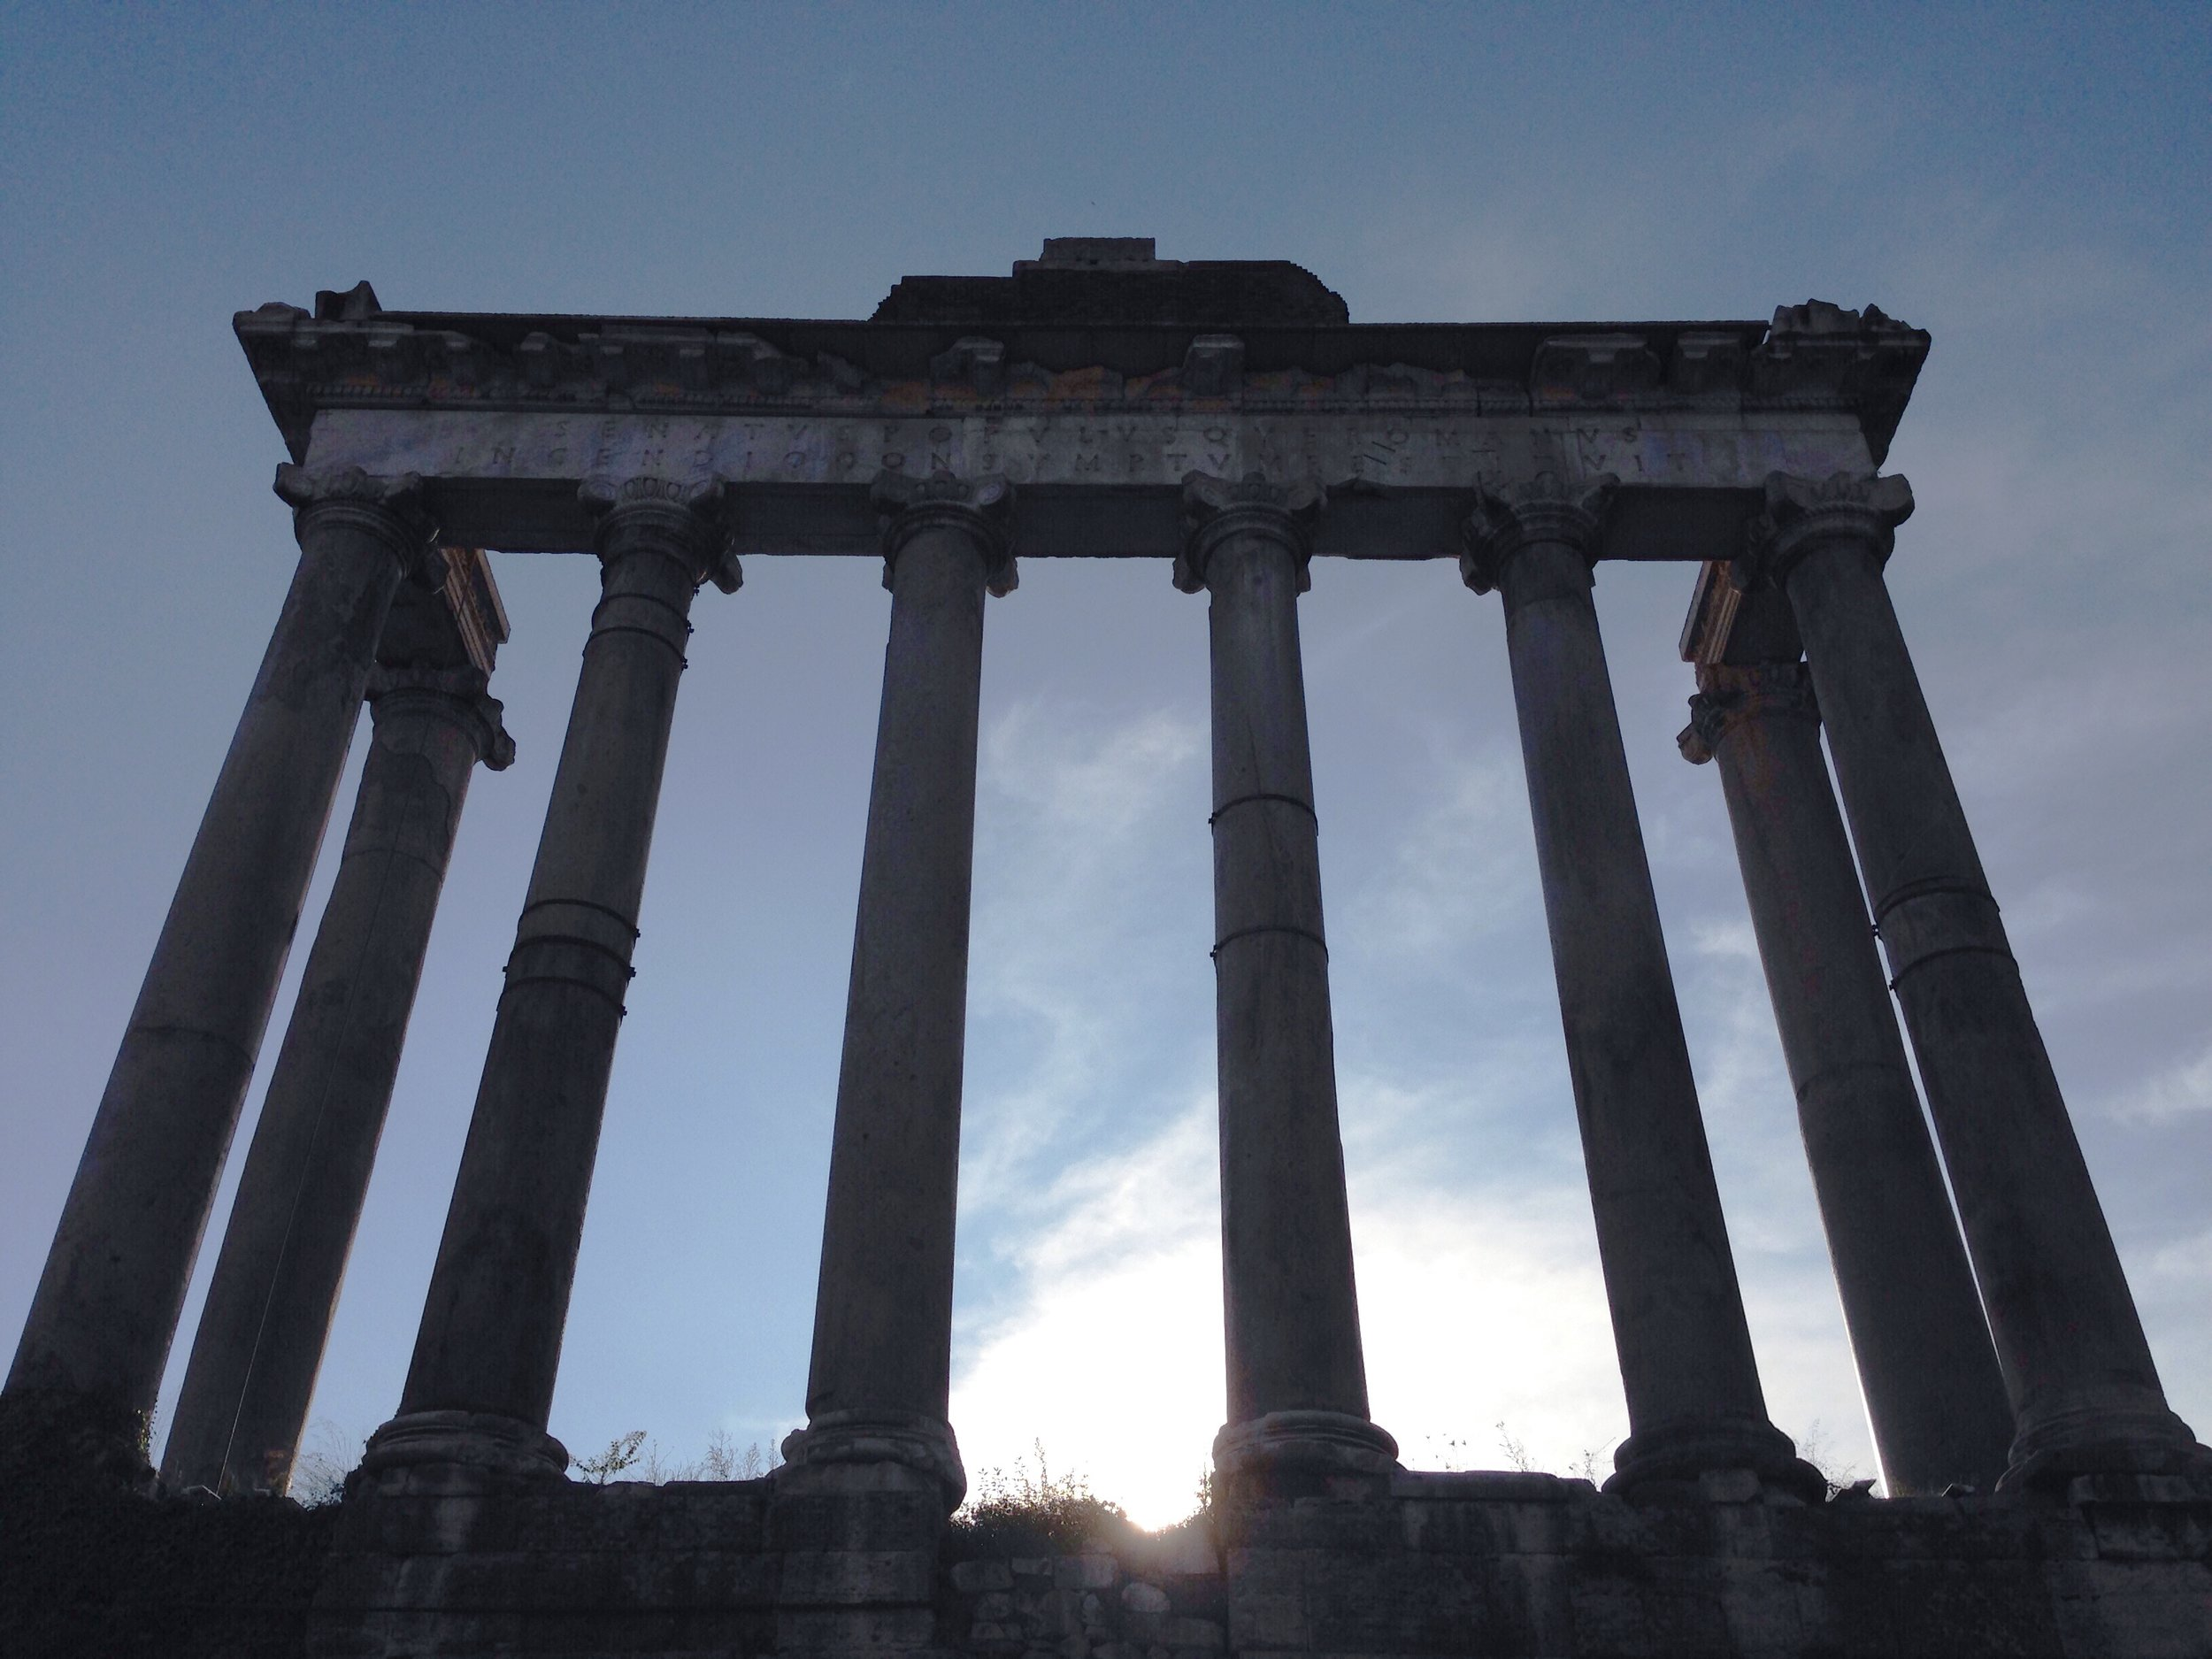 Temple of Saturn. Rome, Italy